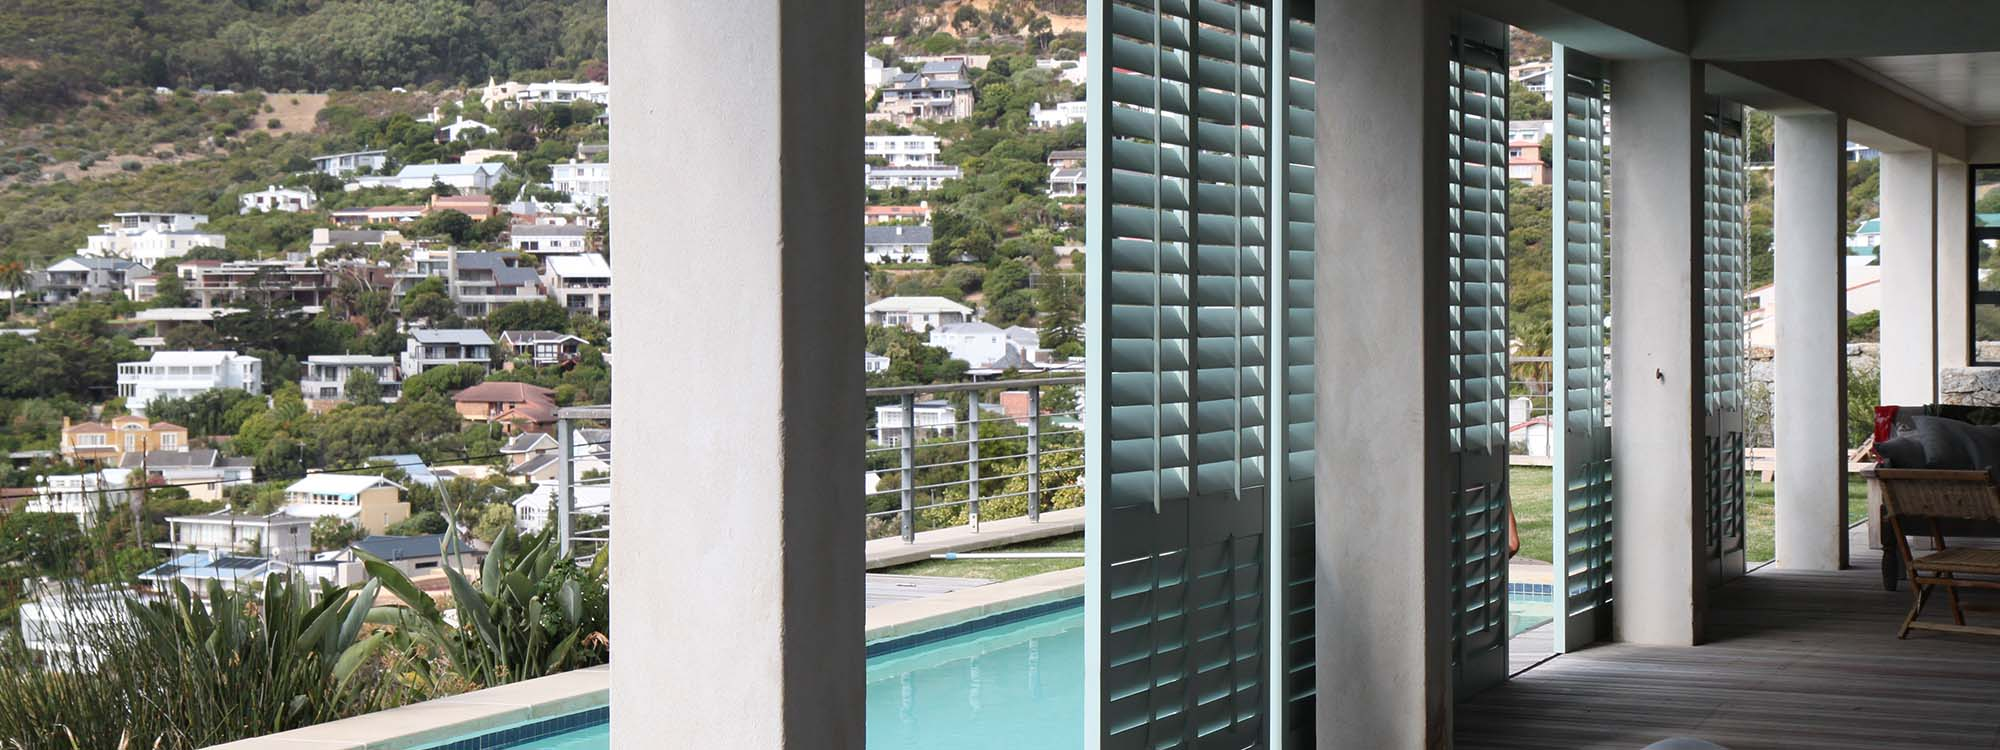 Security-shutters-patio-pool-area-side-view